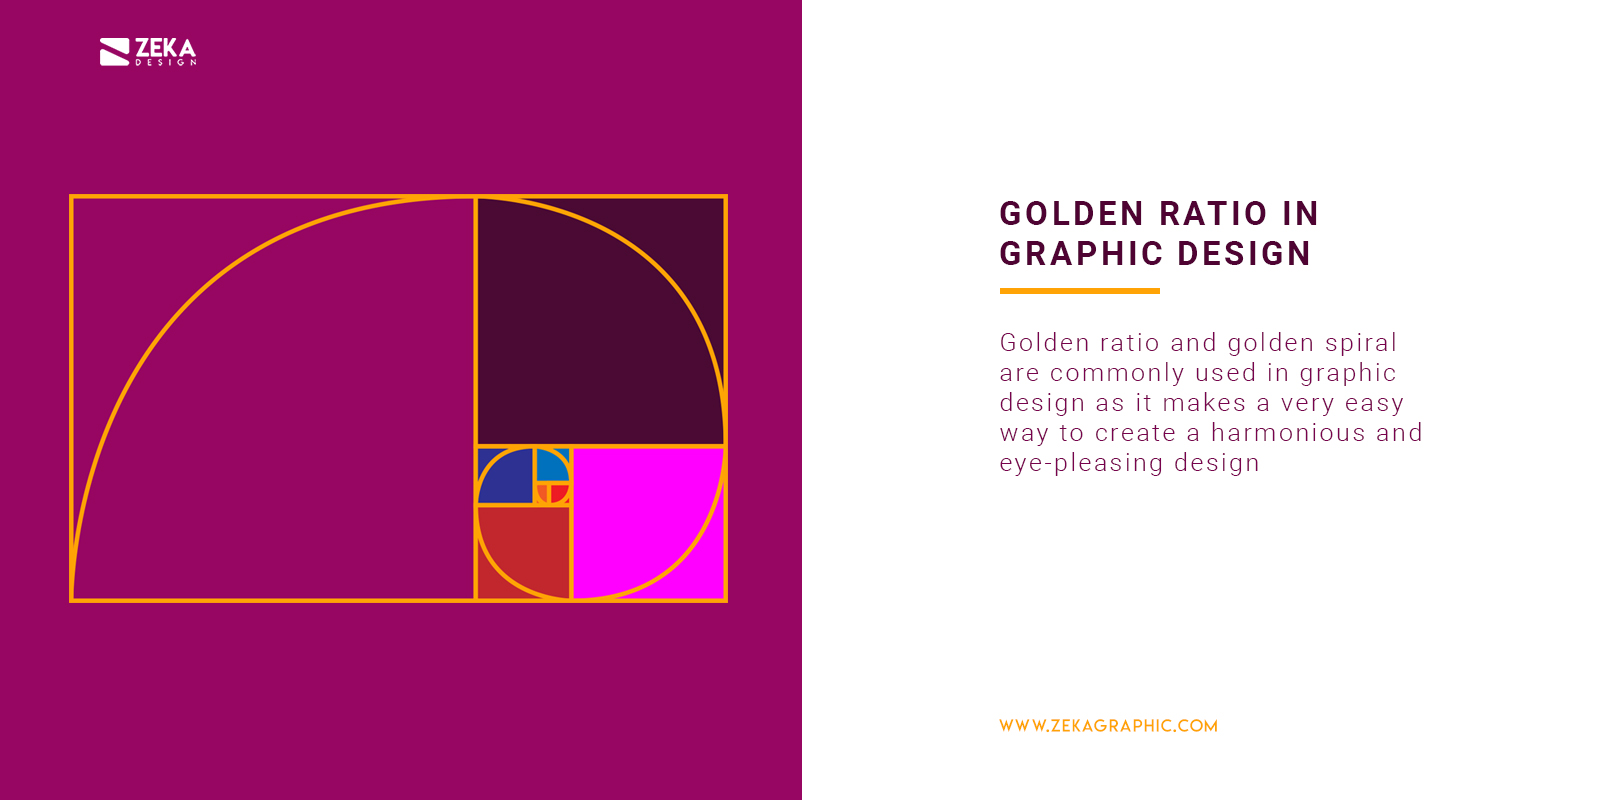 Golden Ratio in Graphic Design Explained